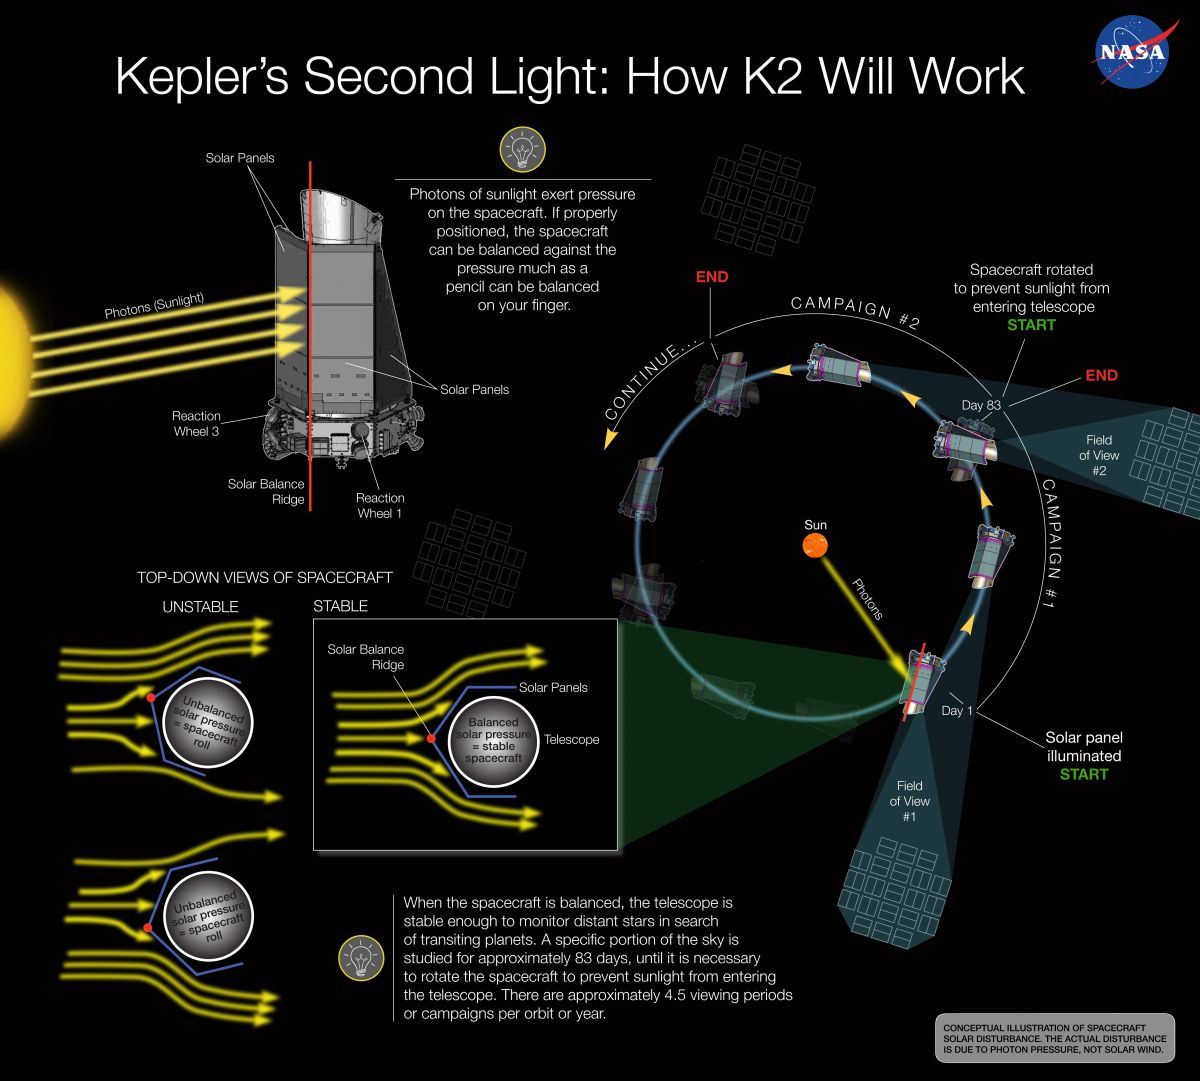 A diagram of how the Kepler telescope uses sunlight to balance itself and illuminate its solar panels, allowing it to continue searching for new exoplanets despite a malfunction in 2013.